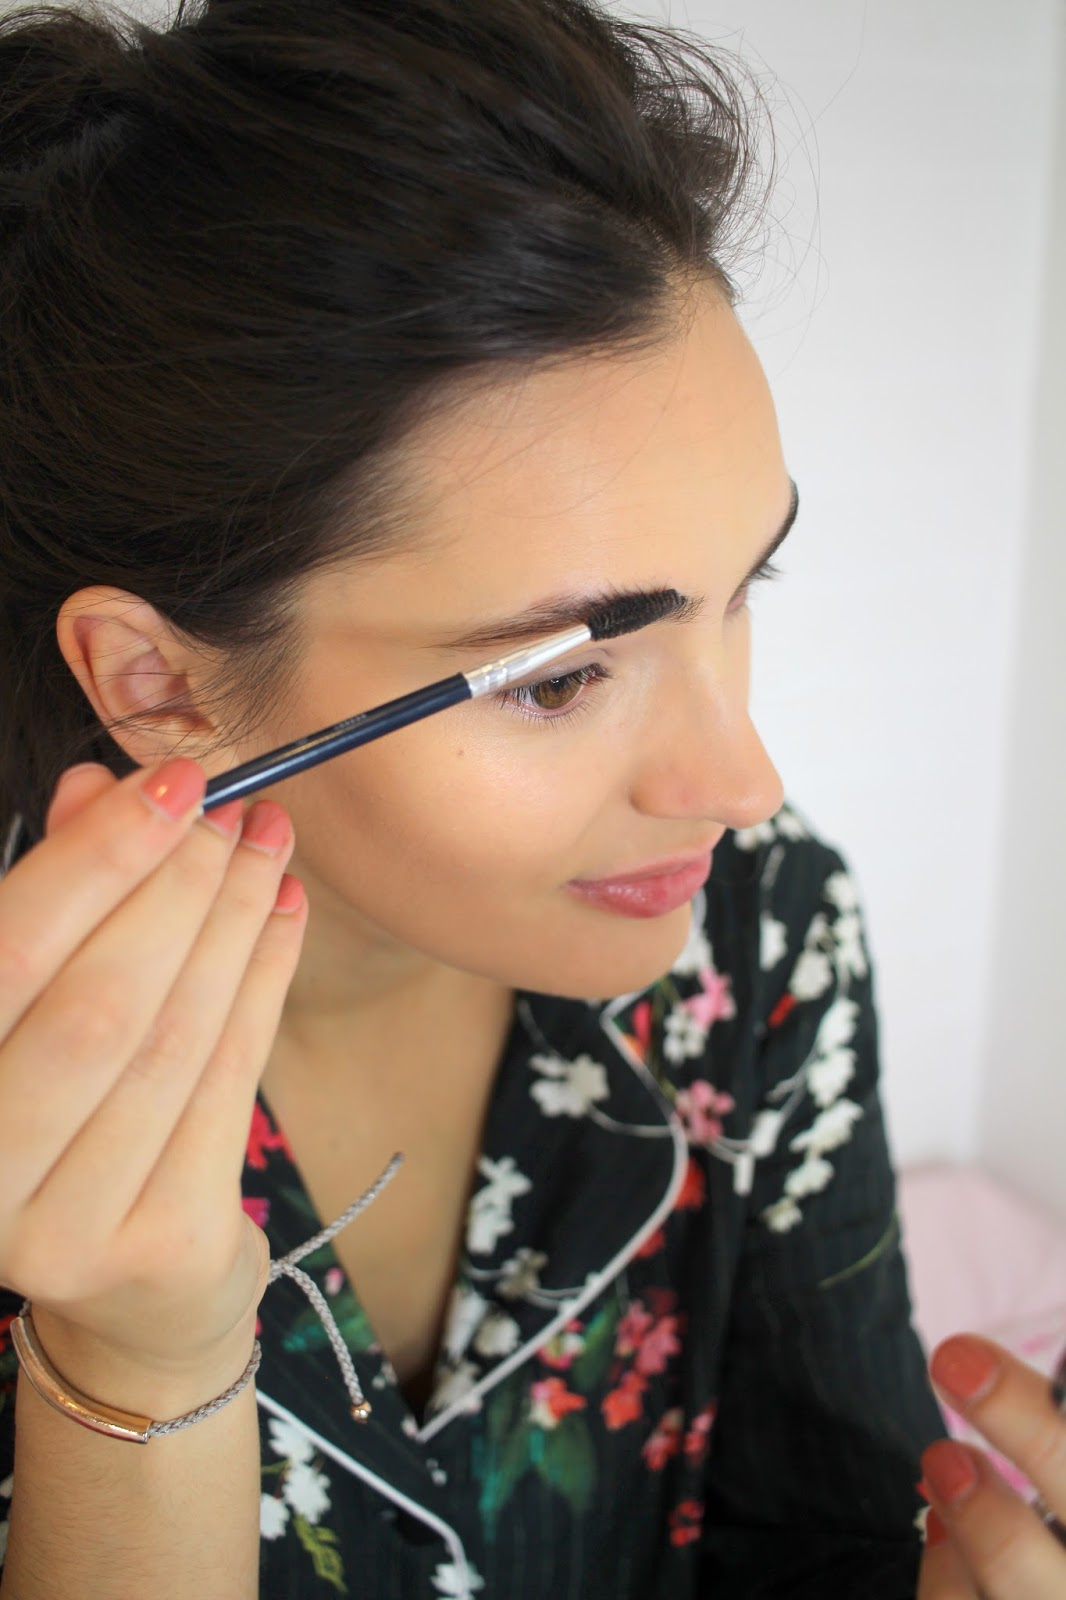 eyebrow hacks peexo beauty blogger